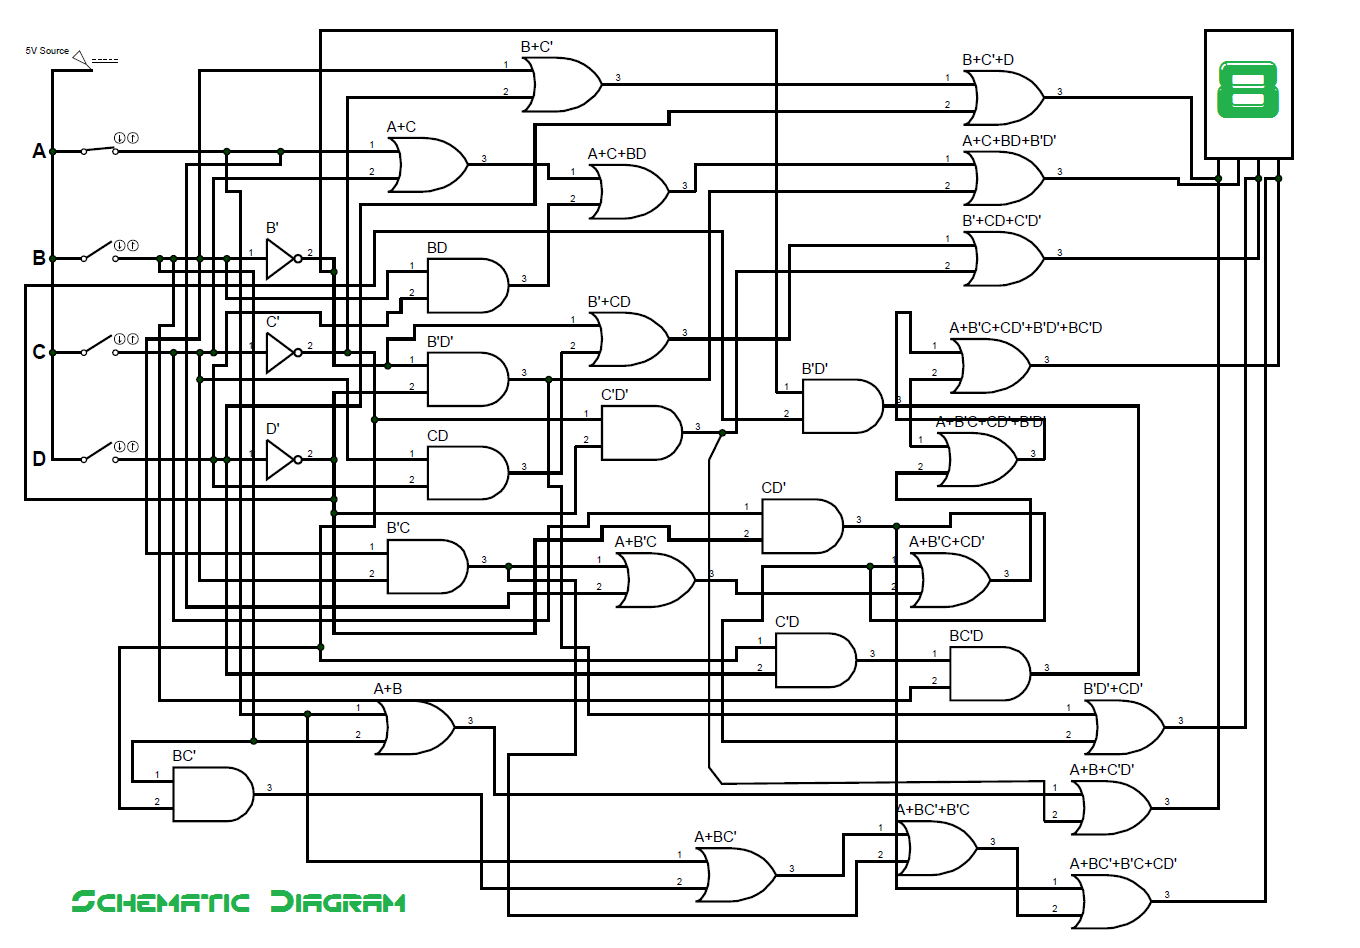 bcd to seven segment decoder ic diagram